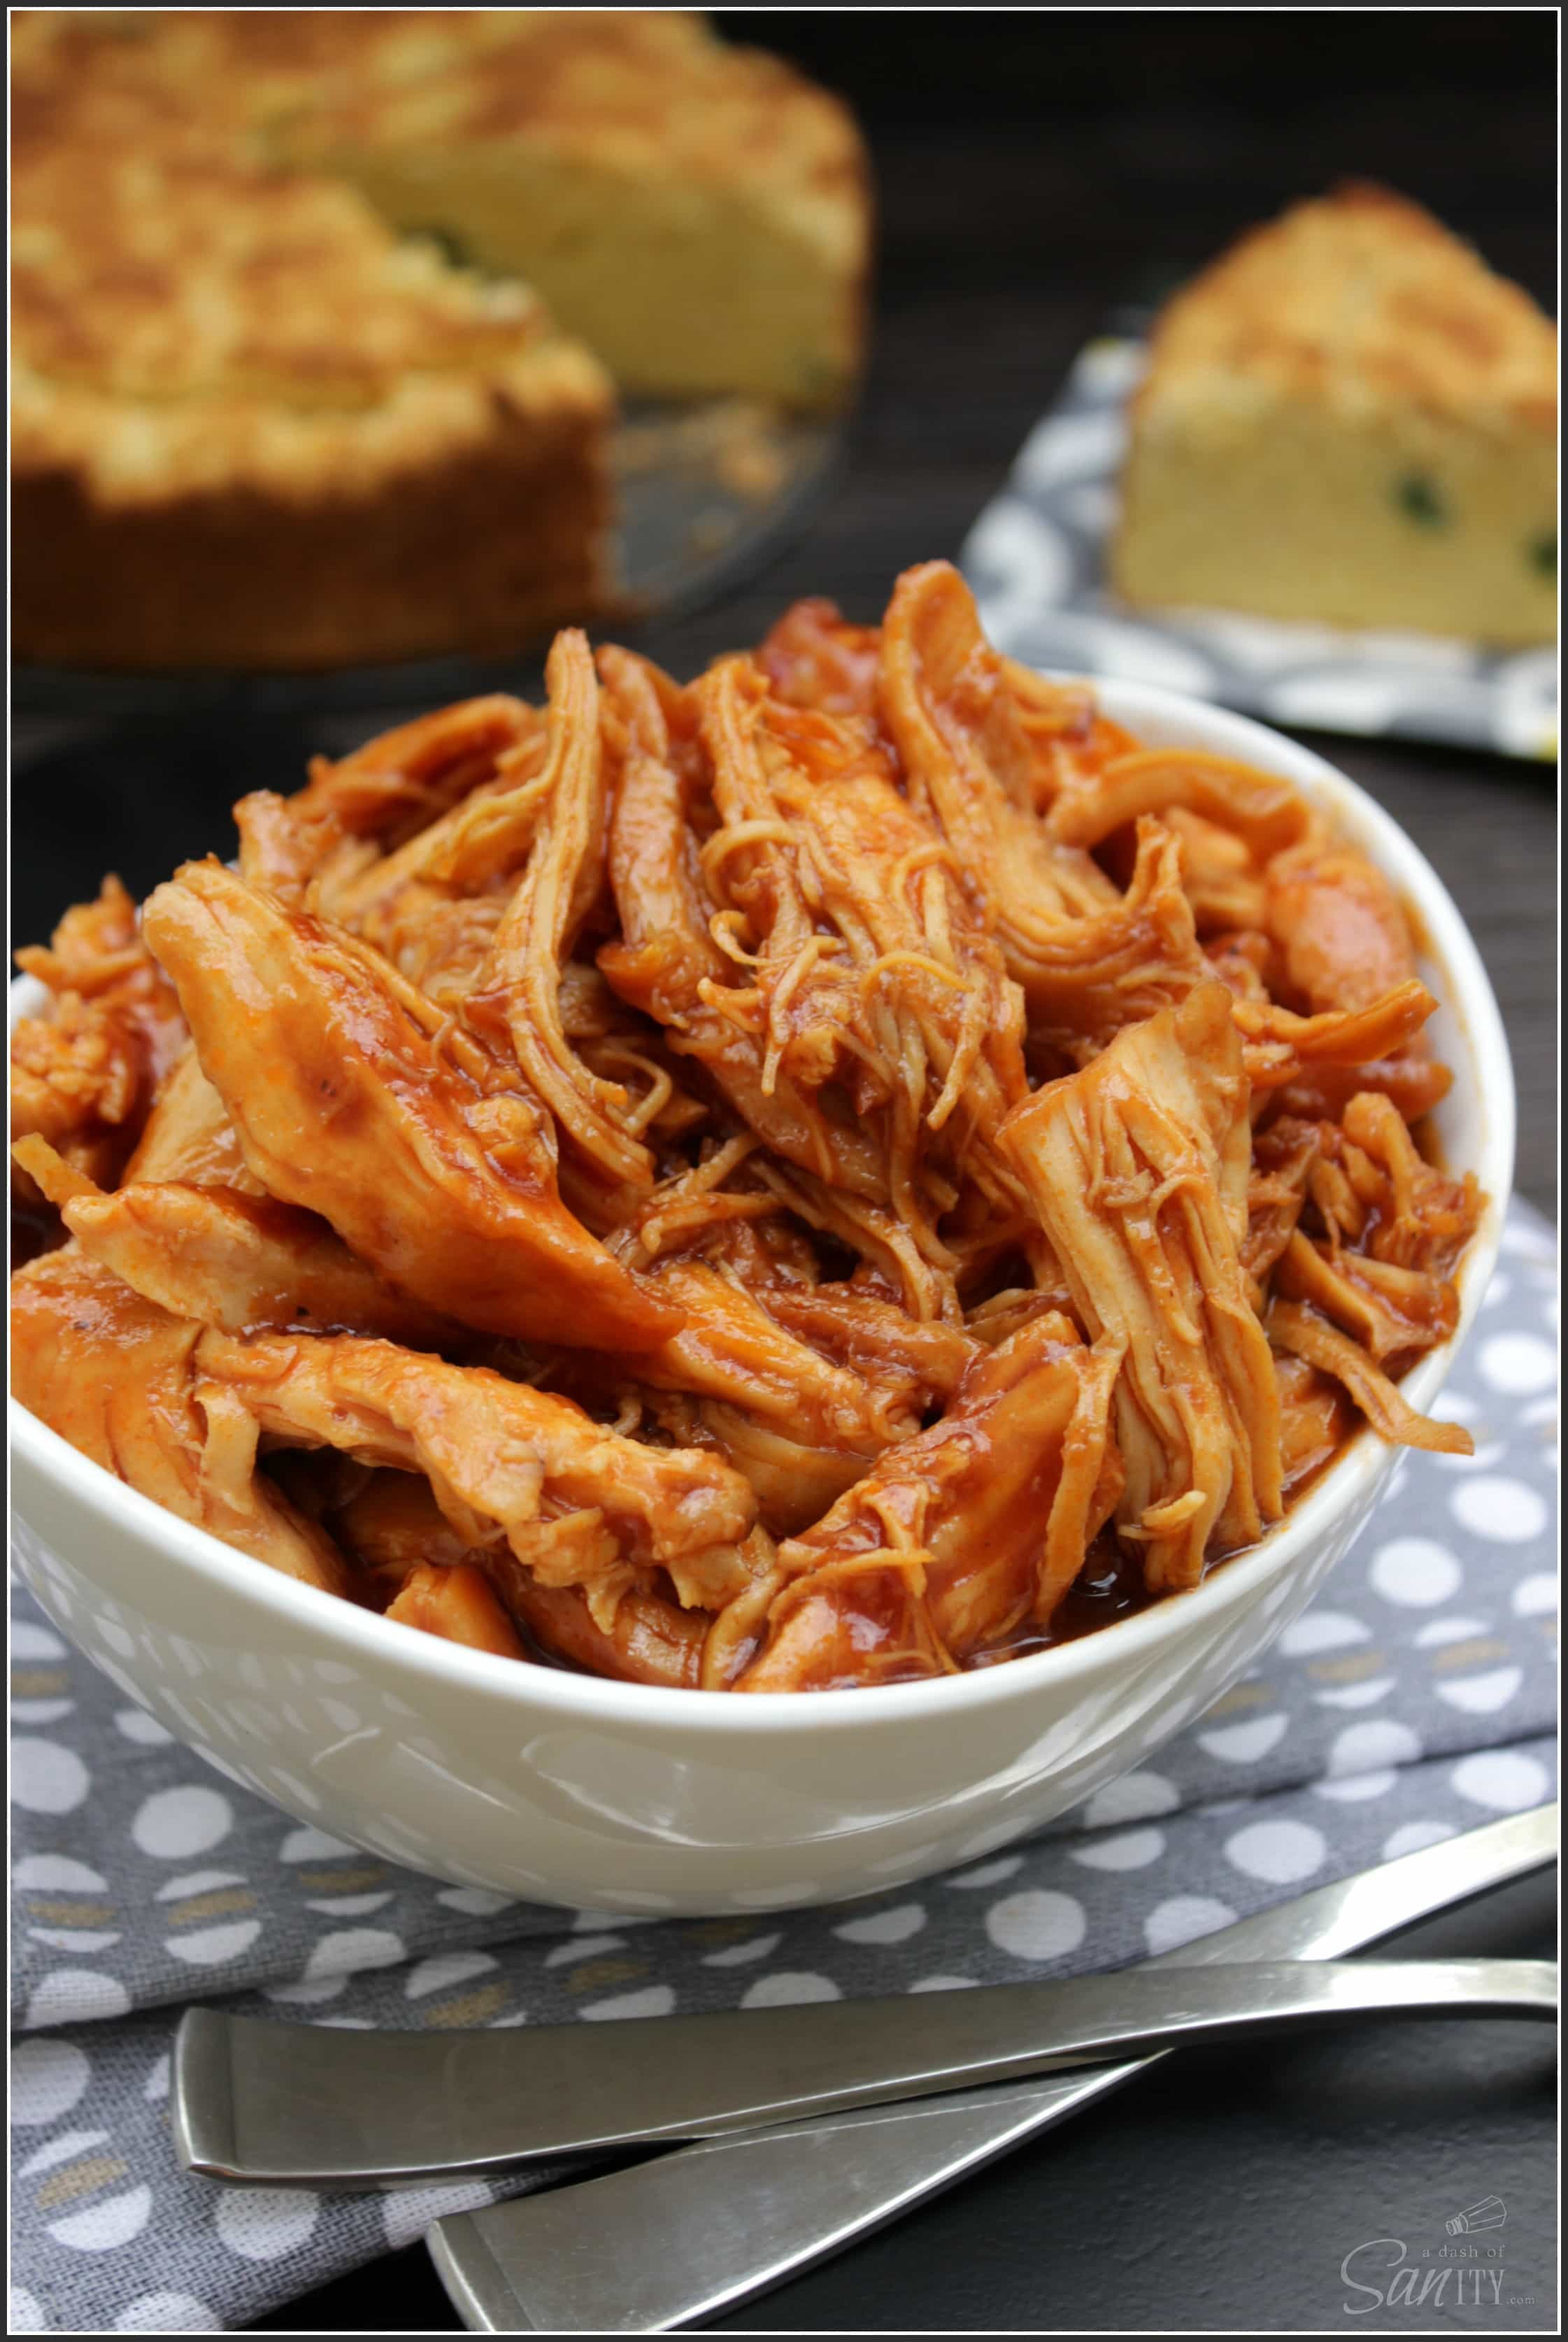 Sweet Barbecue Chicken is an easy crockpot recipe. The slow cooker leaves the chicken moist & tender. Leave the work to your crockpot, sit back & enjoy.